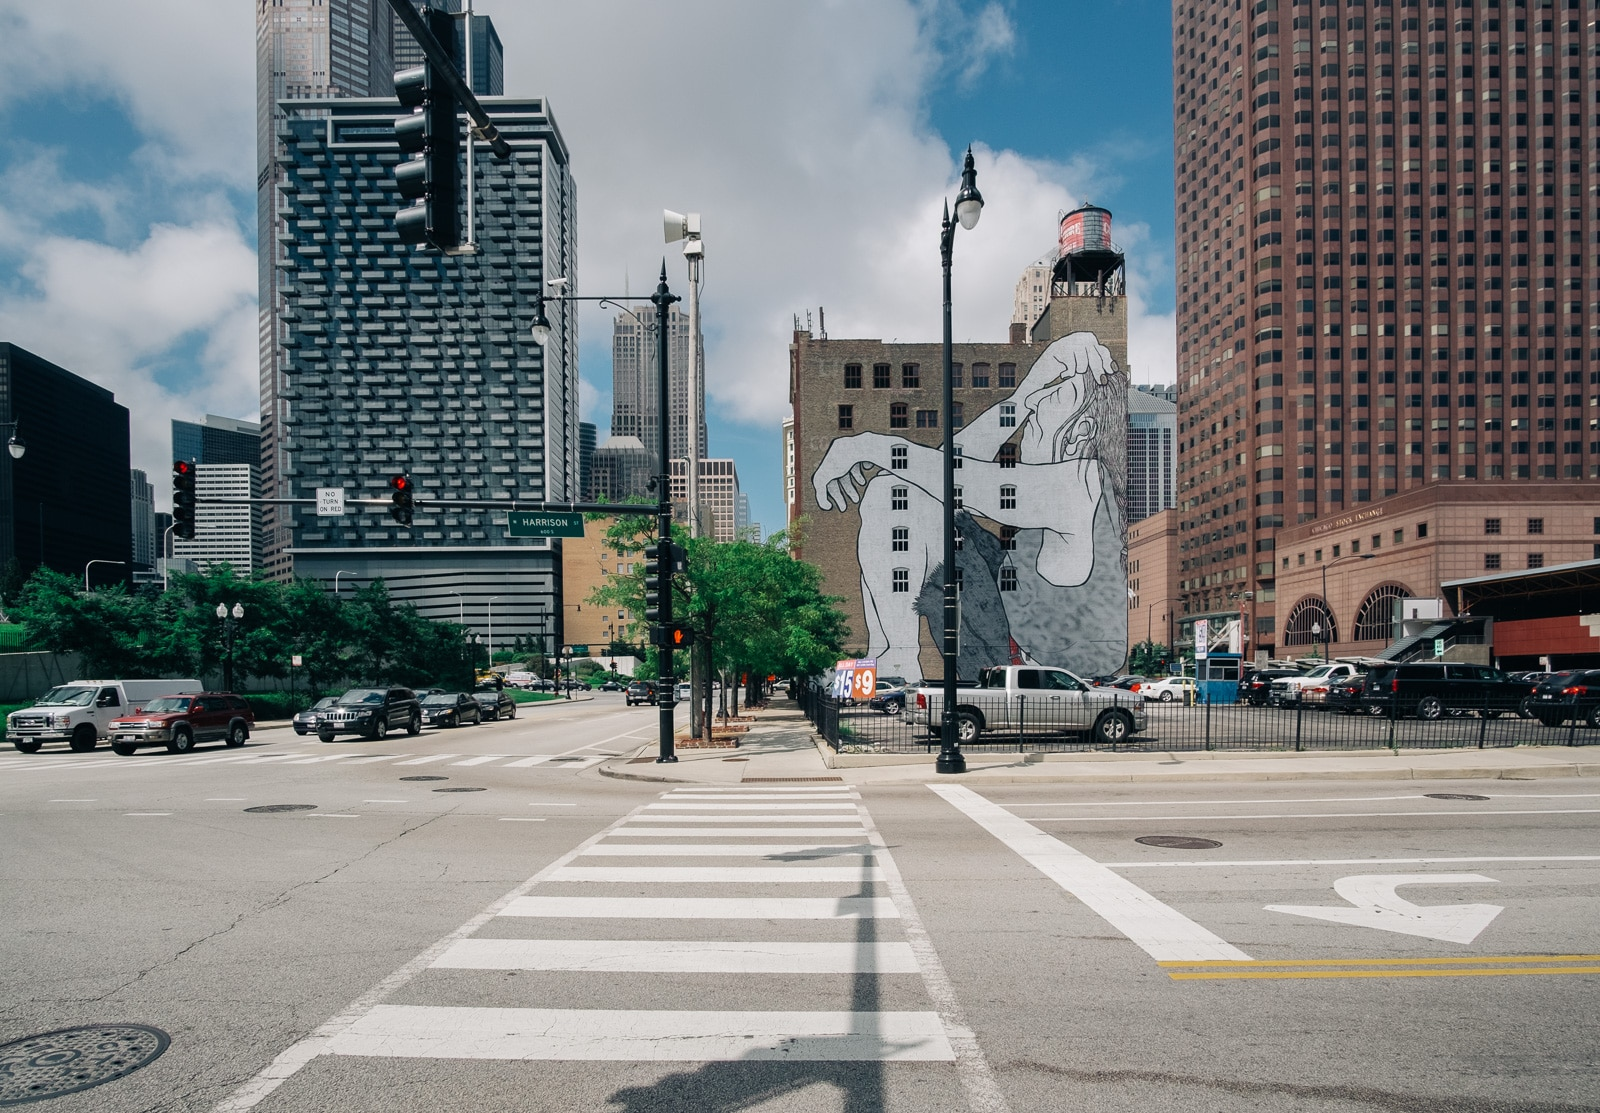 Chicago - street art